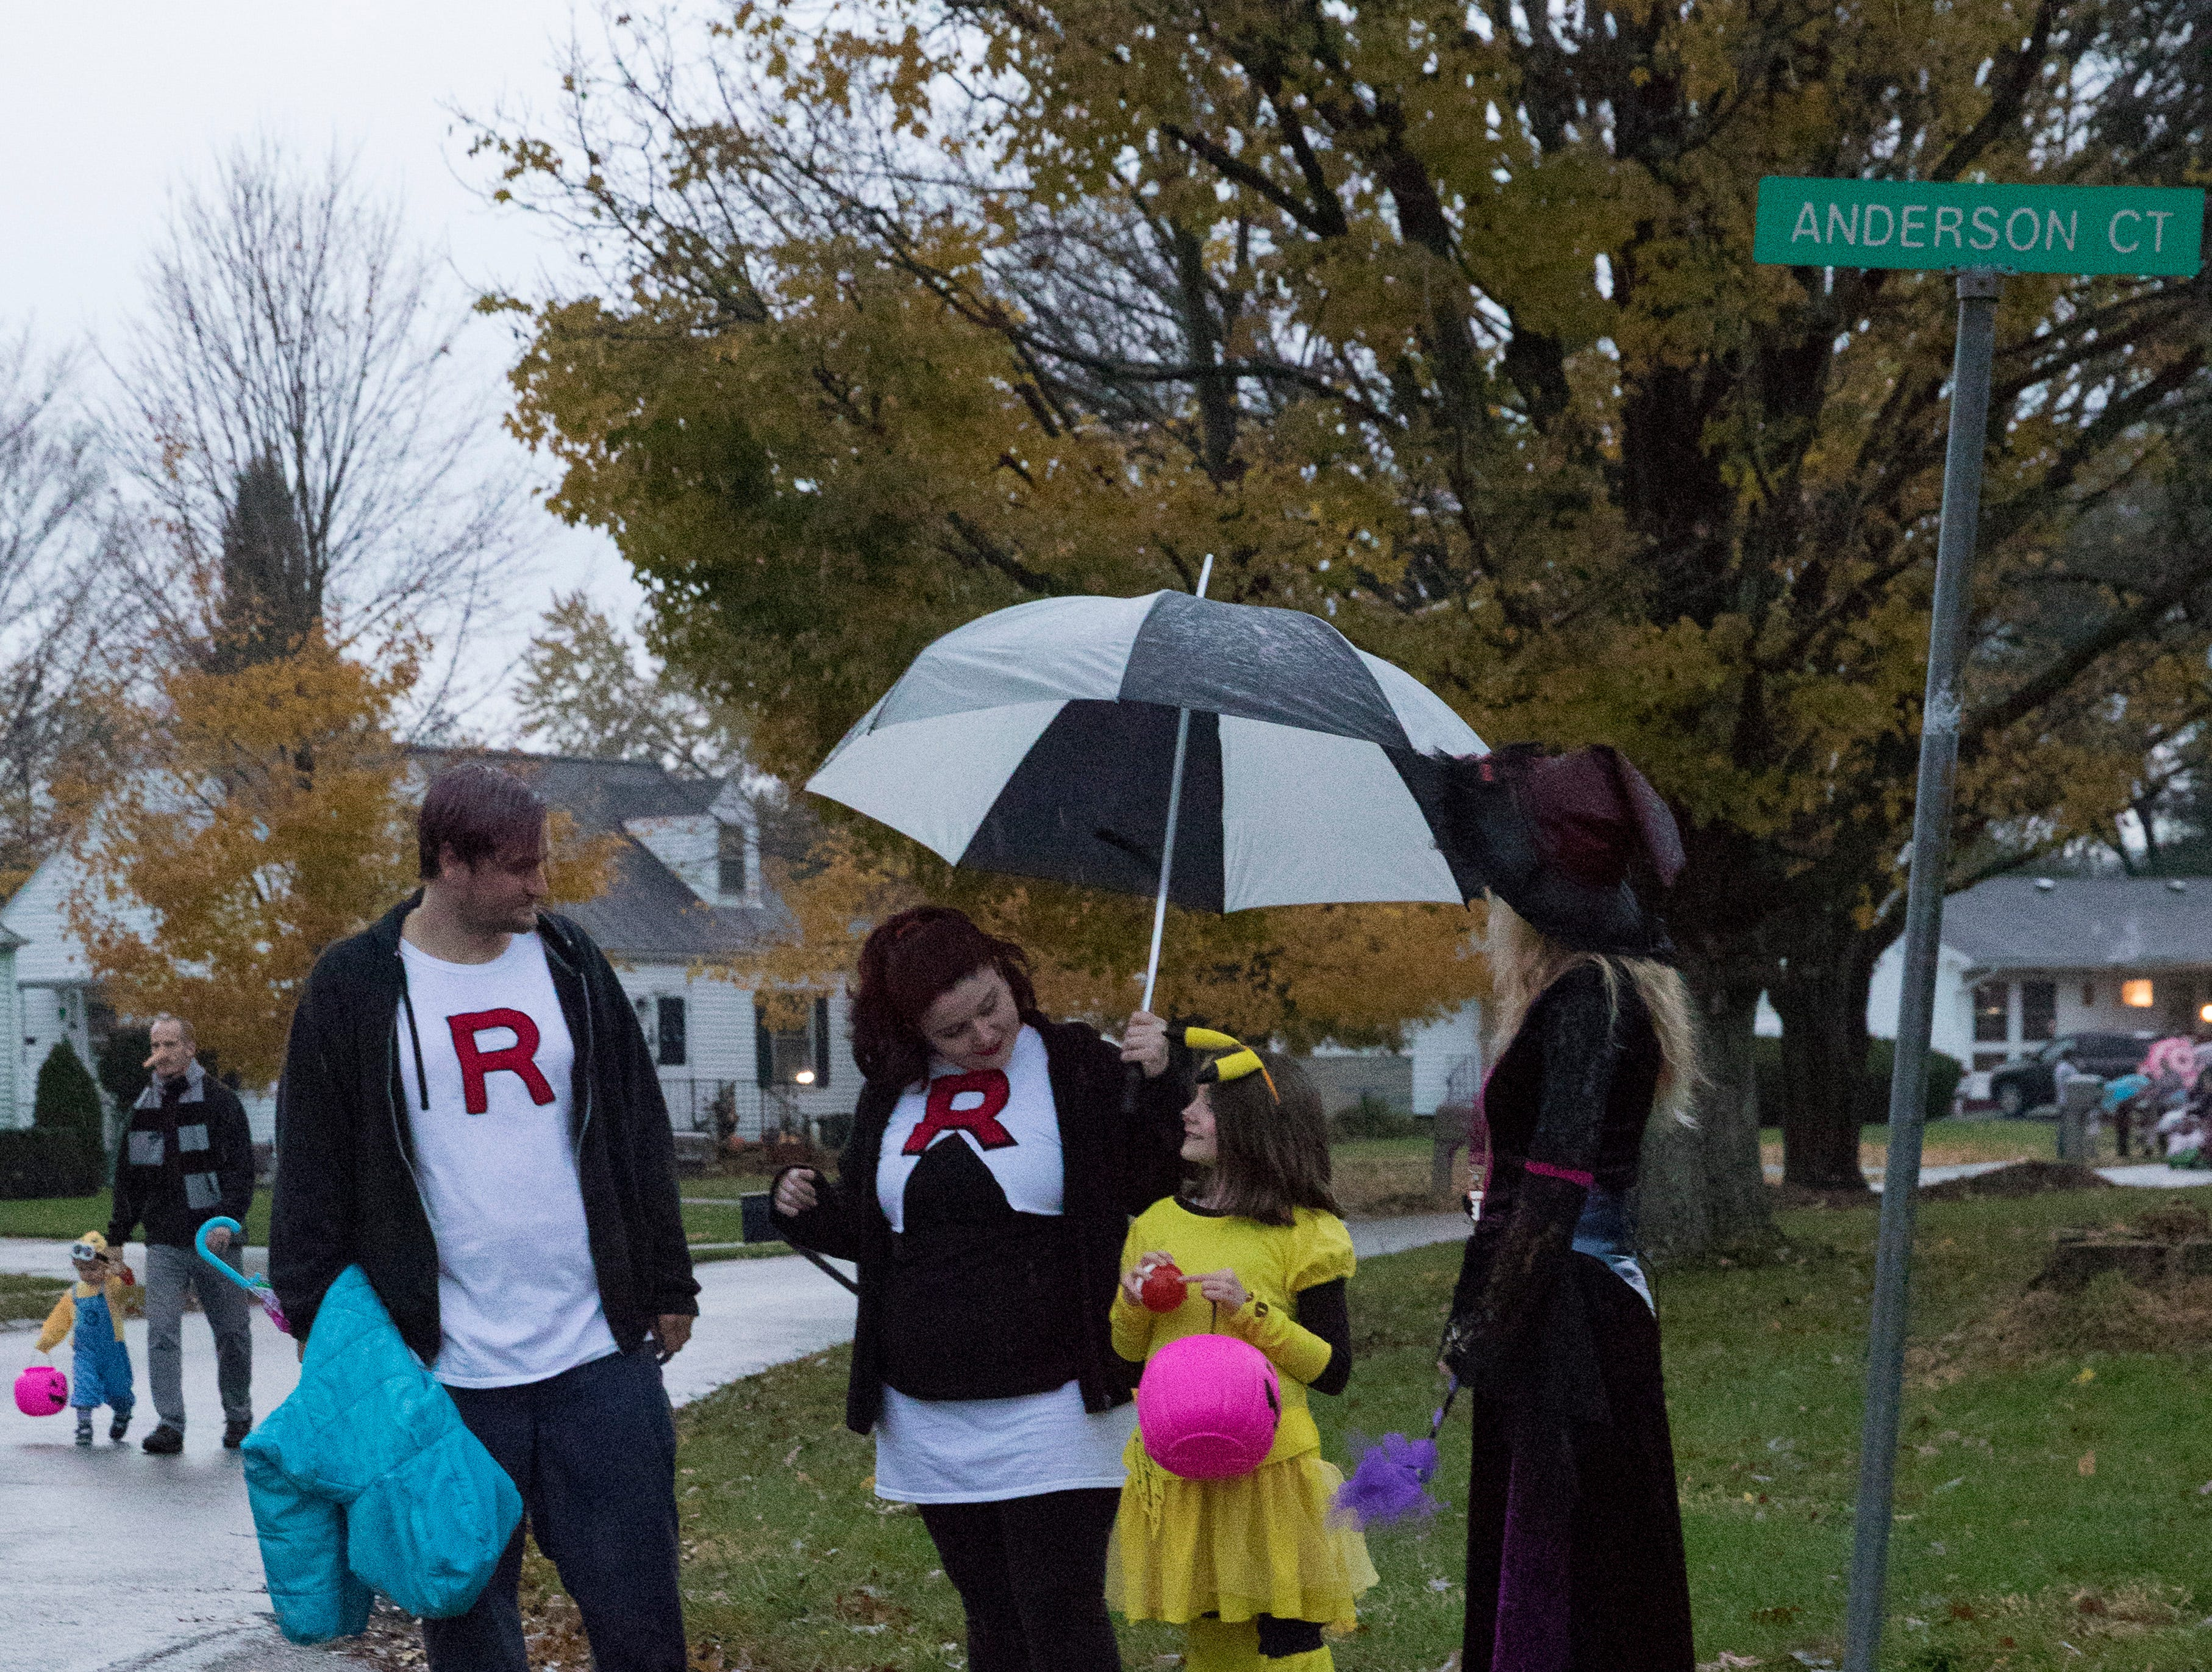 The rain and mud did not stop residents from collecting candy on trick-or-treat night in Chillicothe, Ohio, on October 31, 2018.